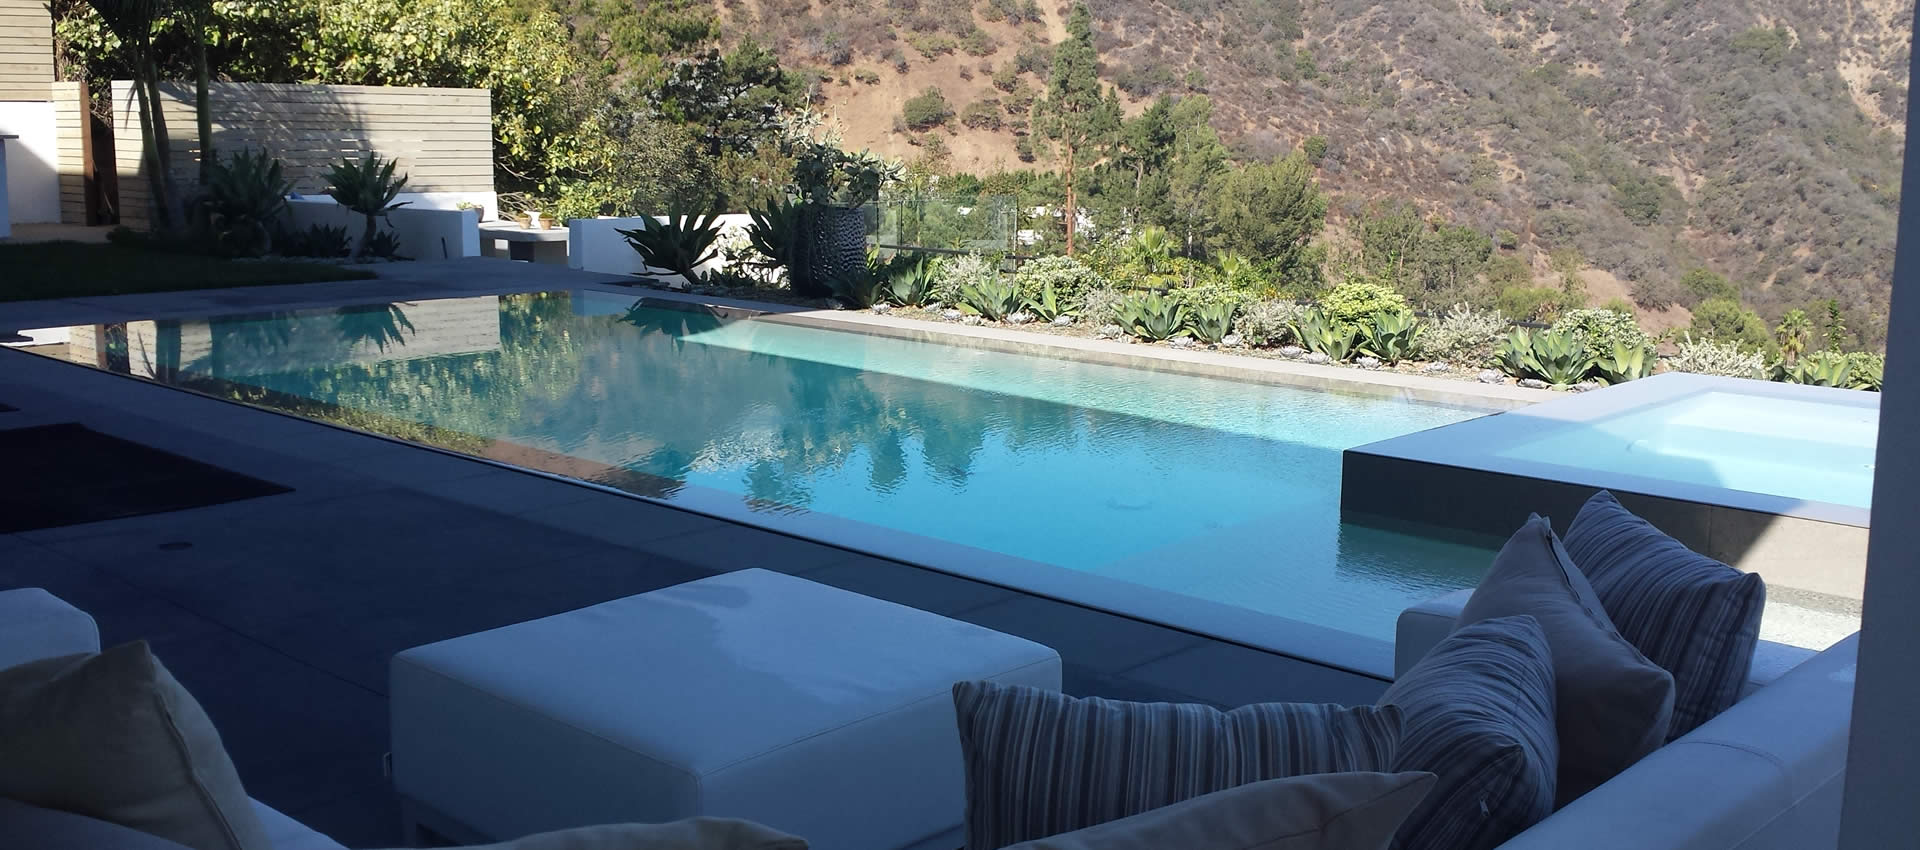 Los Angeles Pool Builders Southern California Swimming Pool Outdoor Living Designers